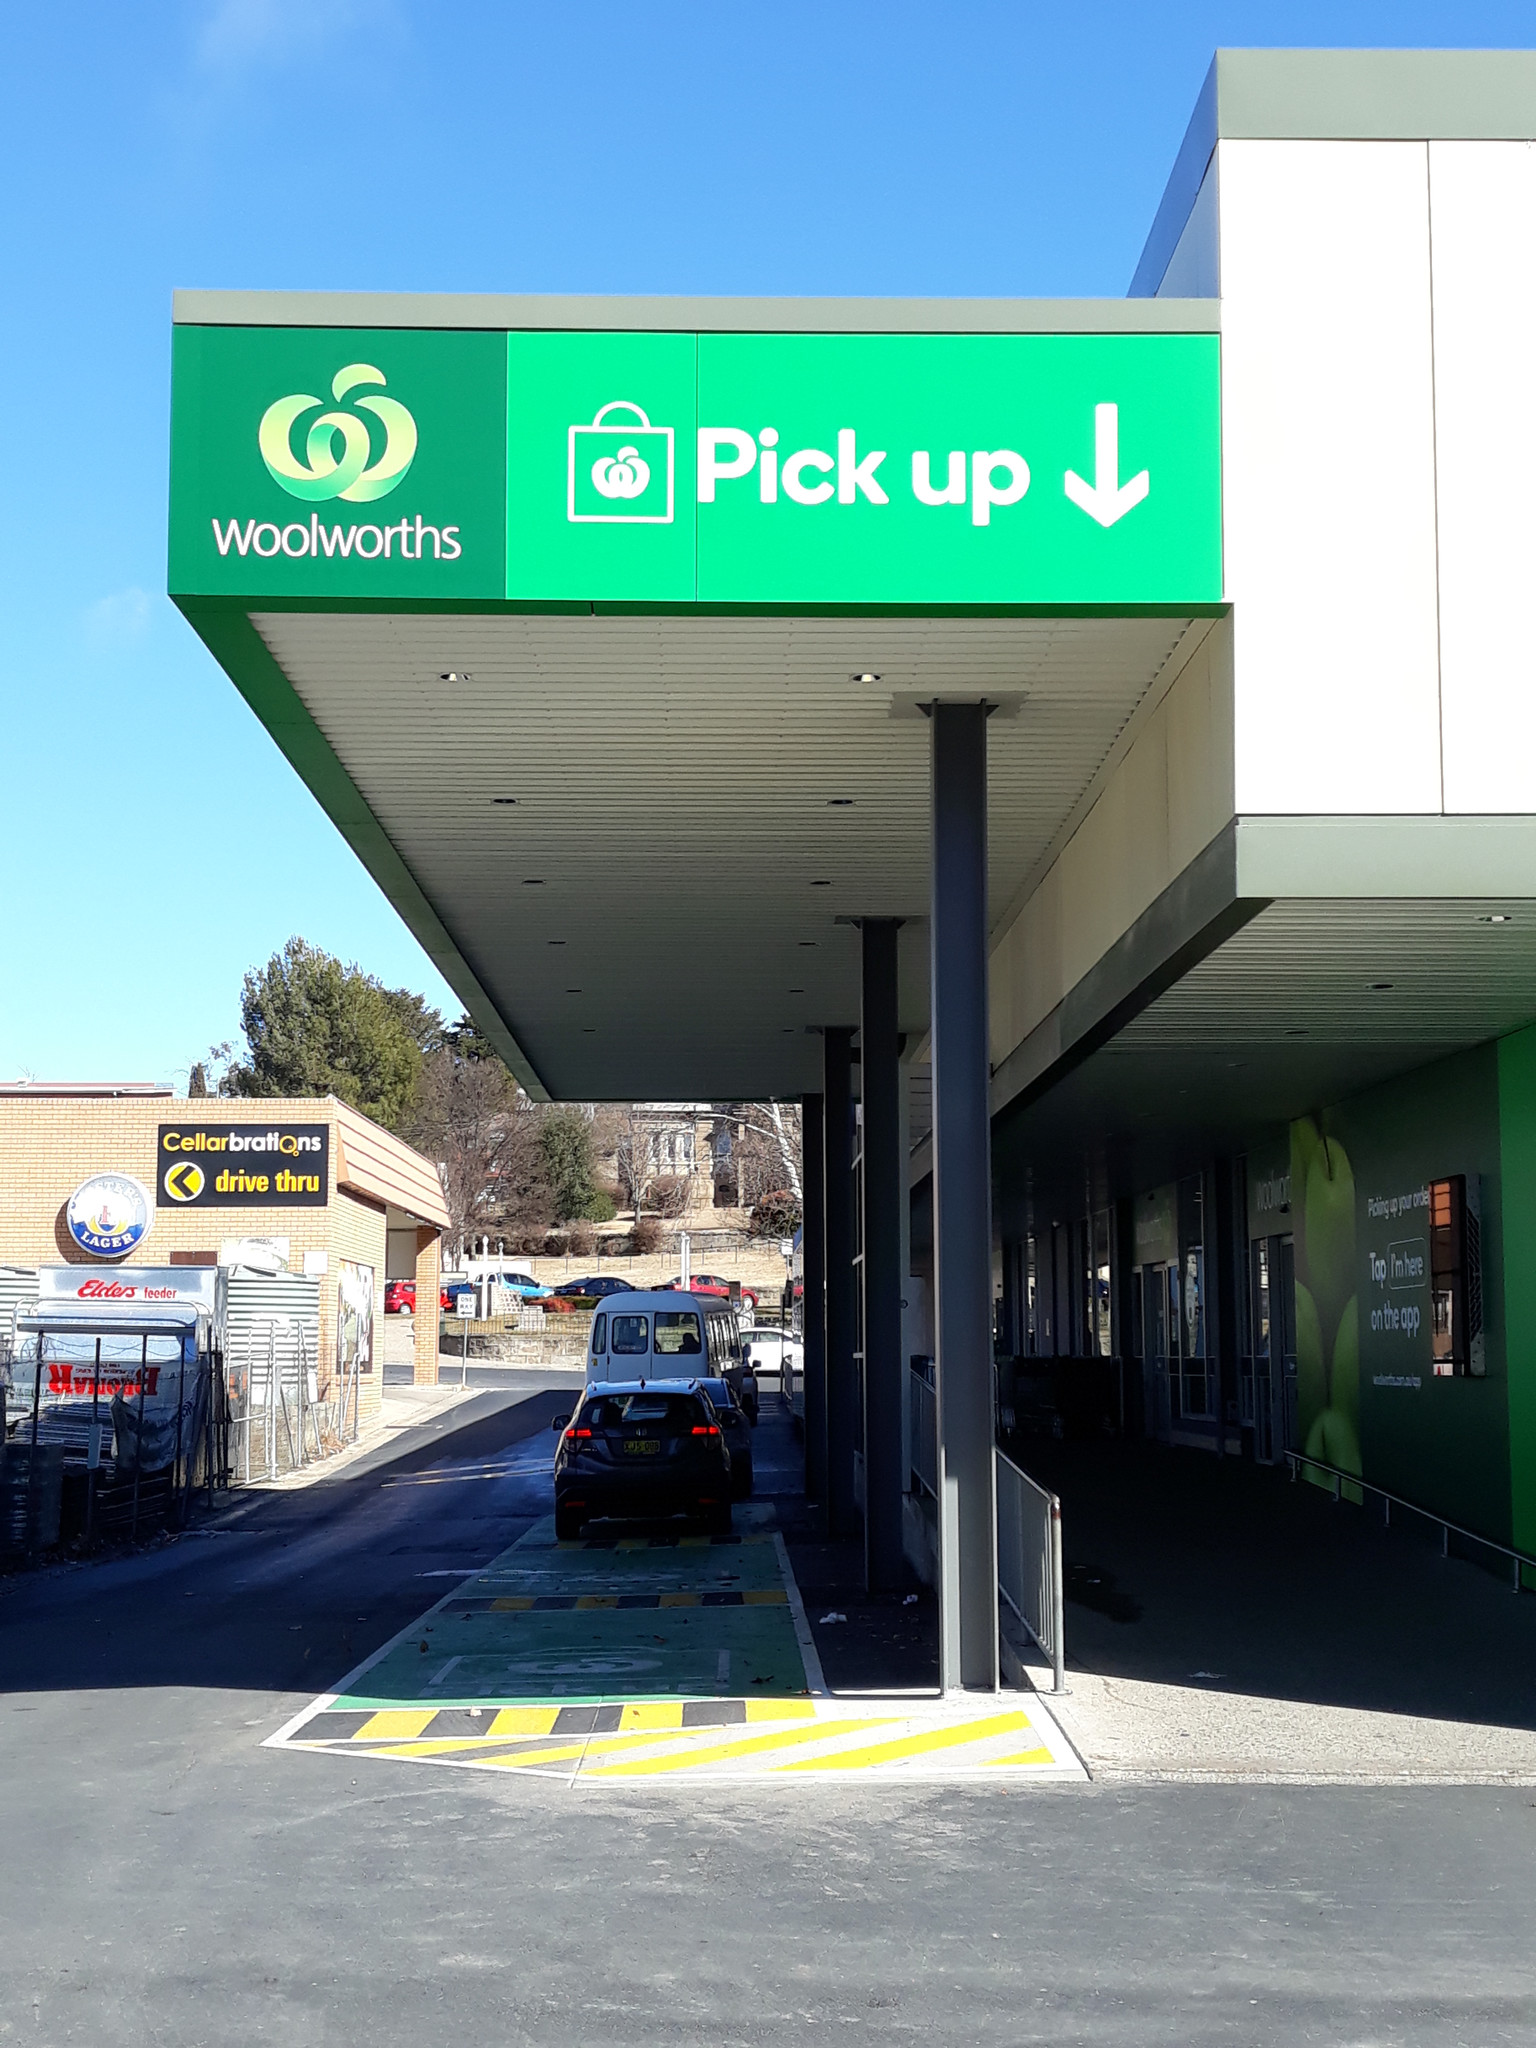 View of the new Pick Up area, looking towards the exit onto Vale Street